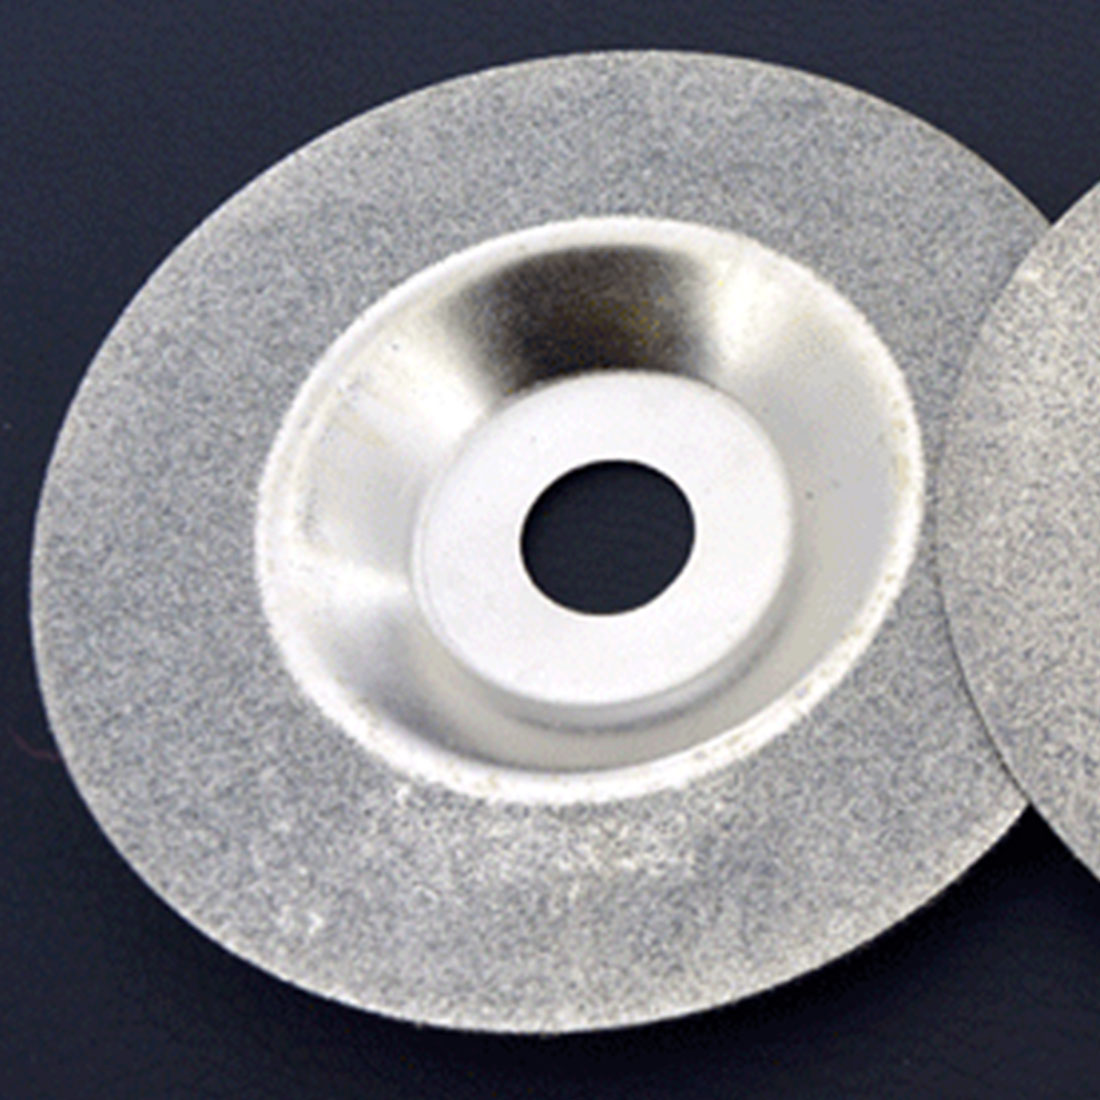 100mm 4 Inch Diamond Coated Grinding Polishing Grind Disc Saw Blade Rotary Wheel Silver